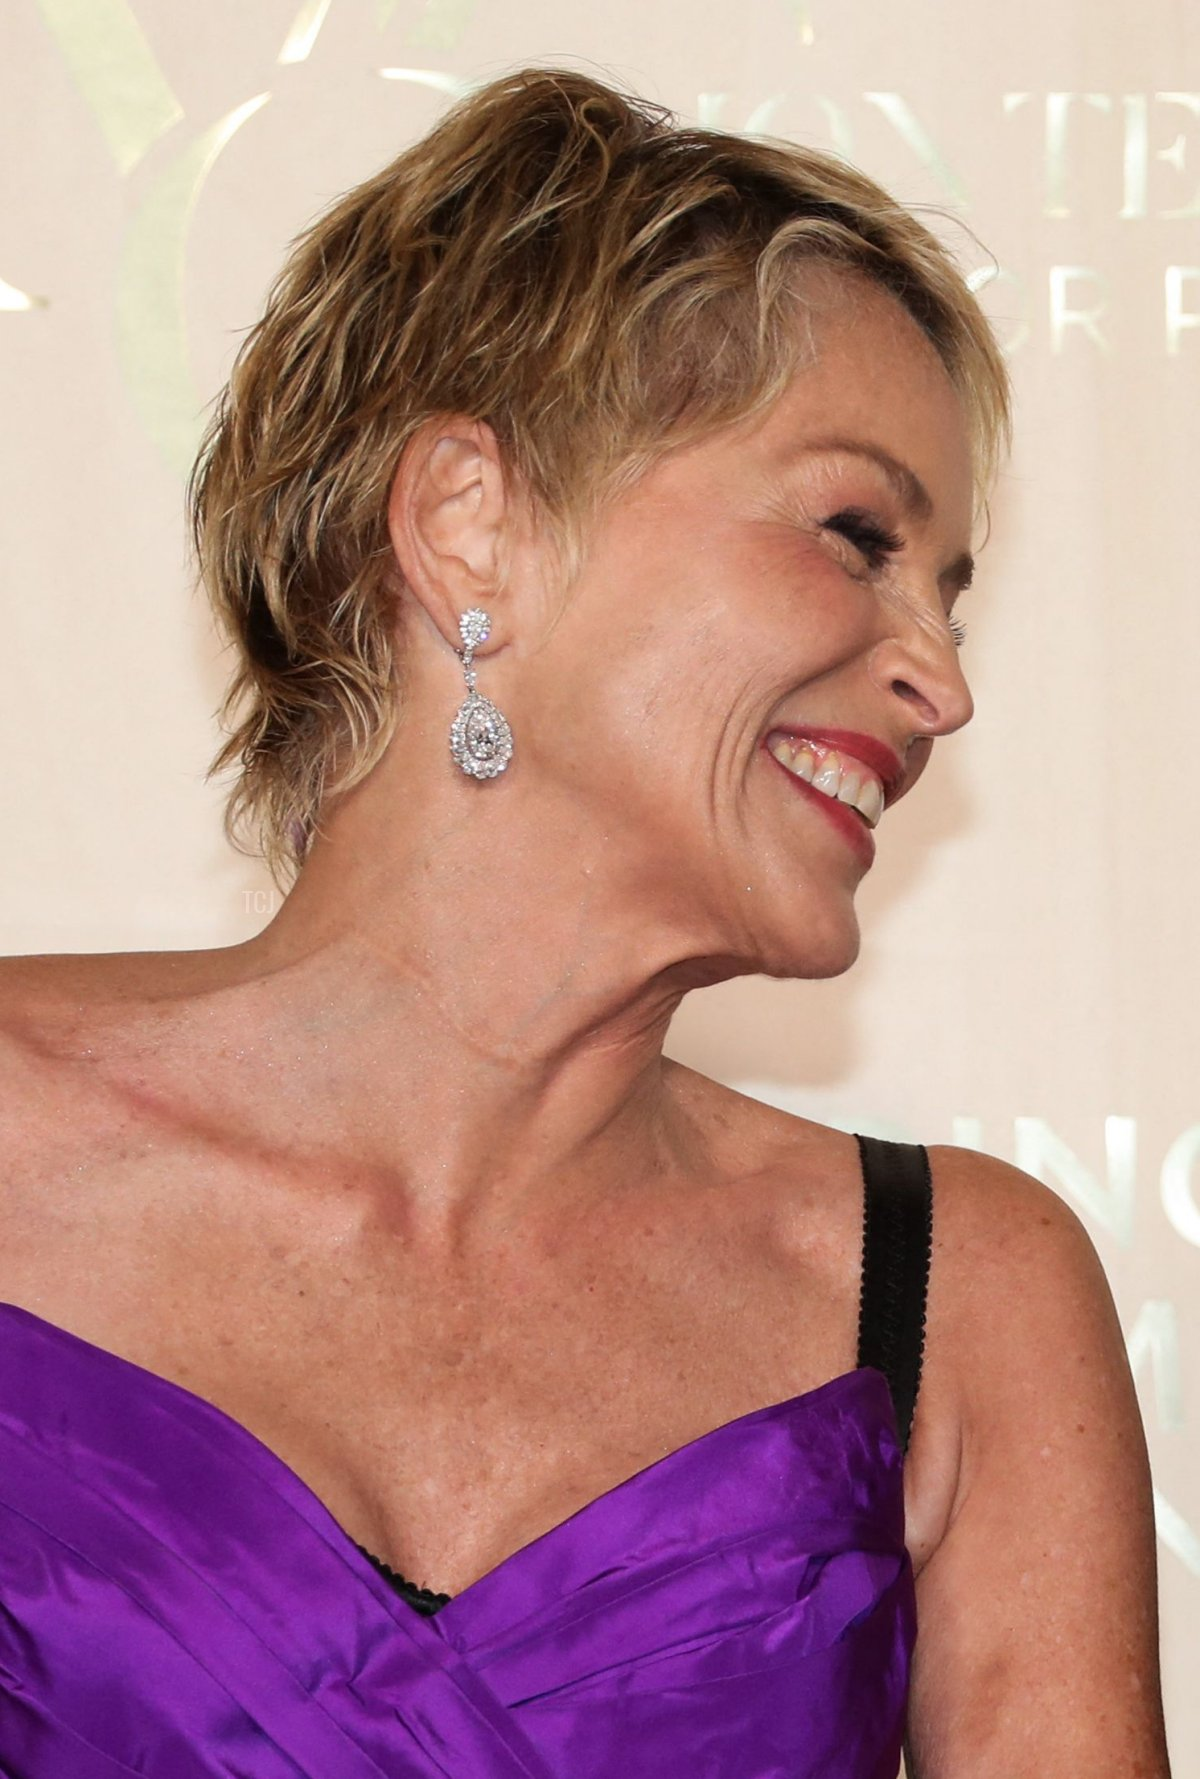 Sharon Stone attends the 5th Monte-Carlo Gala For Planetary Health on September 23, 2021 in Monte-Carlo, Monaco